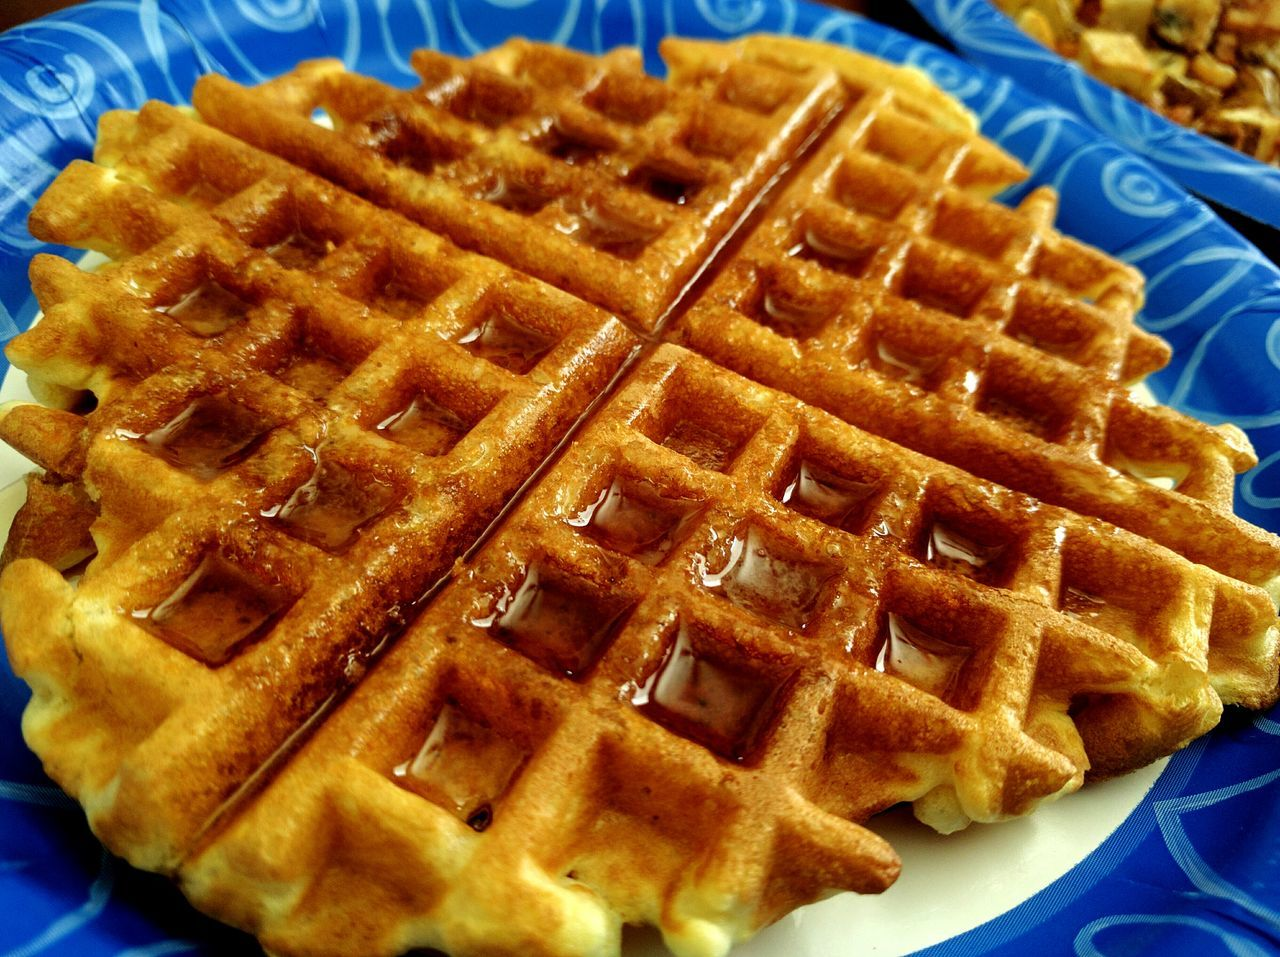 this made me smile this morning Taking Photos Mobile Photography Waffle Time Waffles!! Made With Love Made For Me Brunch EyeEm Gallery No People Let's Do It Chic!43 Golden Moments Textures And Surfaces Check This Out Popular Photos Eyeemphotography PaperPlateLife In My Mouf Yummy ♥